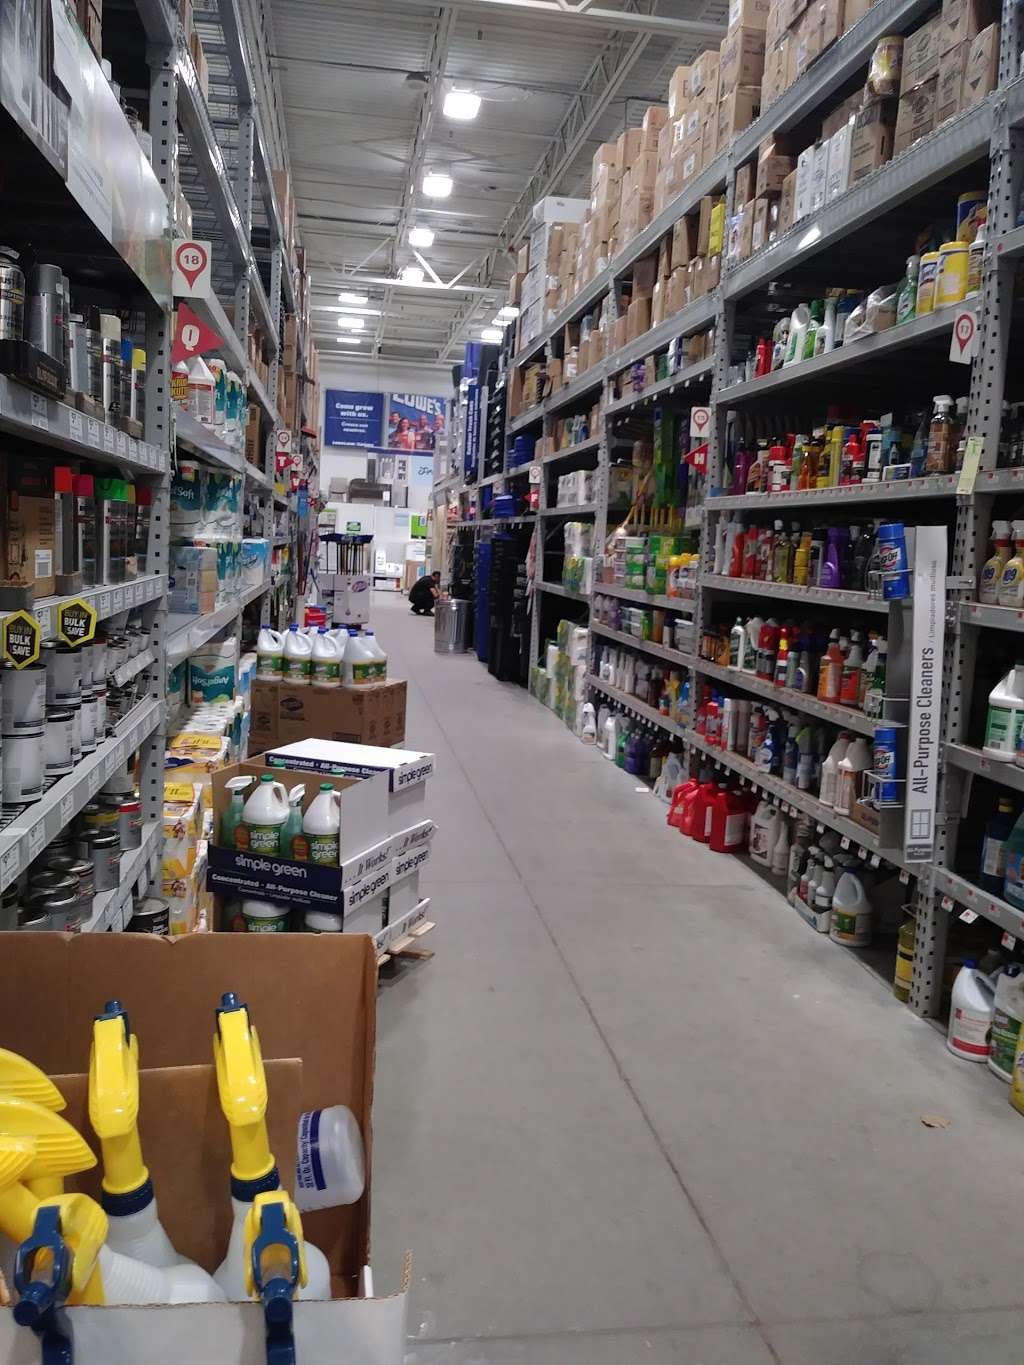 Lowes Home Improvement - hardware store  | Photo 5 of 10 | Address: 40 Fortune Blvd, Milford, MA 01757, USA | Phone: (508) 282-4016